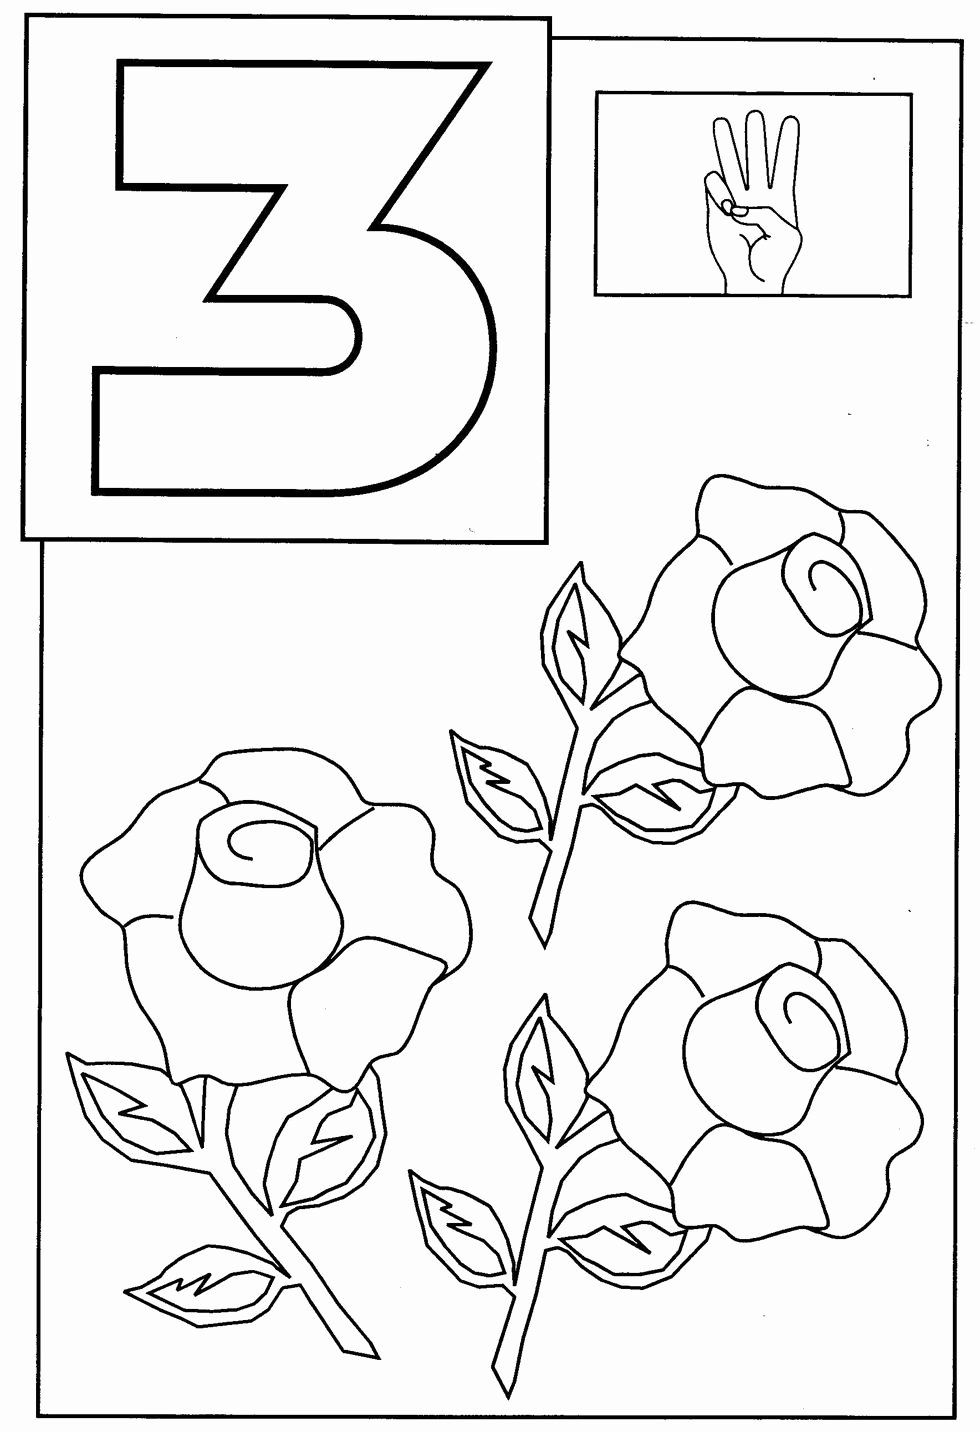 Number 3 Coloring Sheet In 2020 Toddler Coloring Book Disney